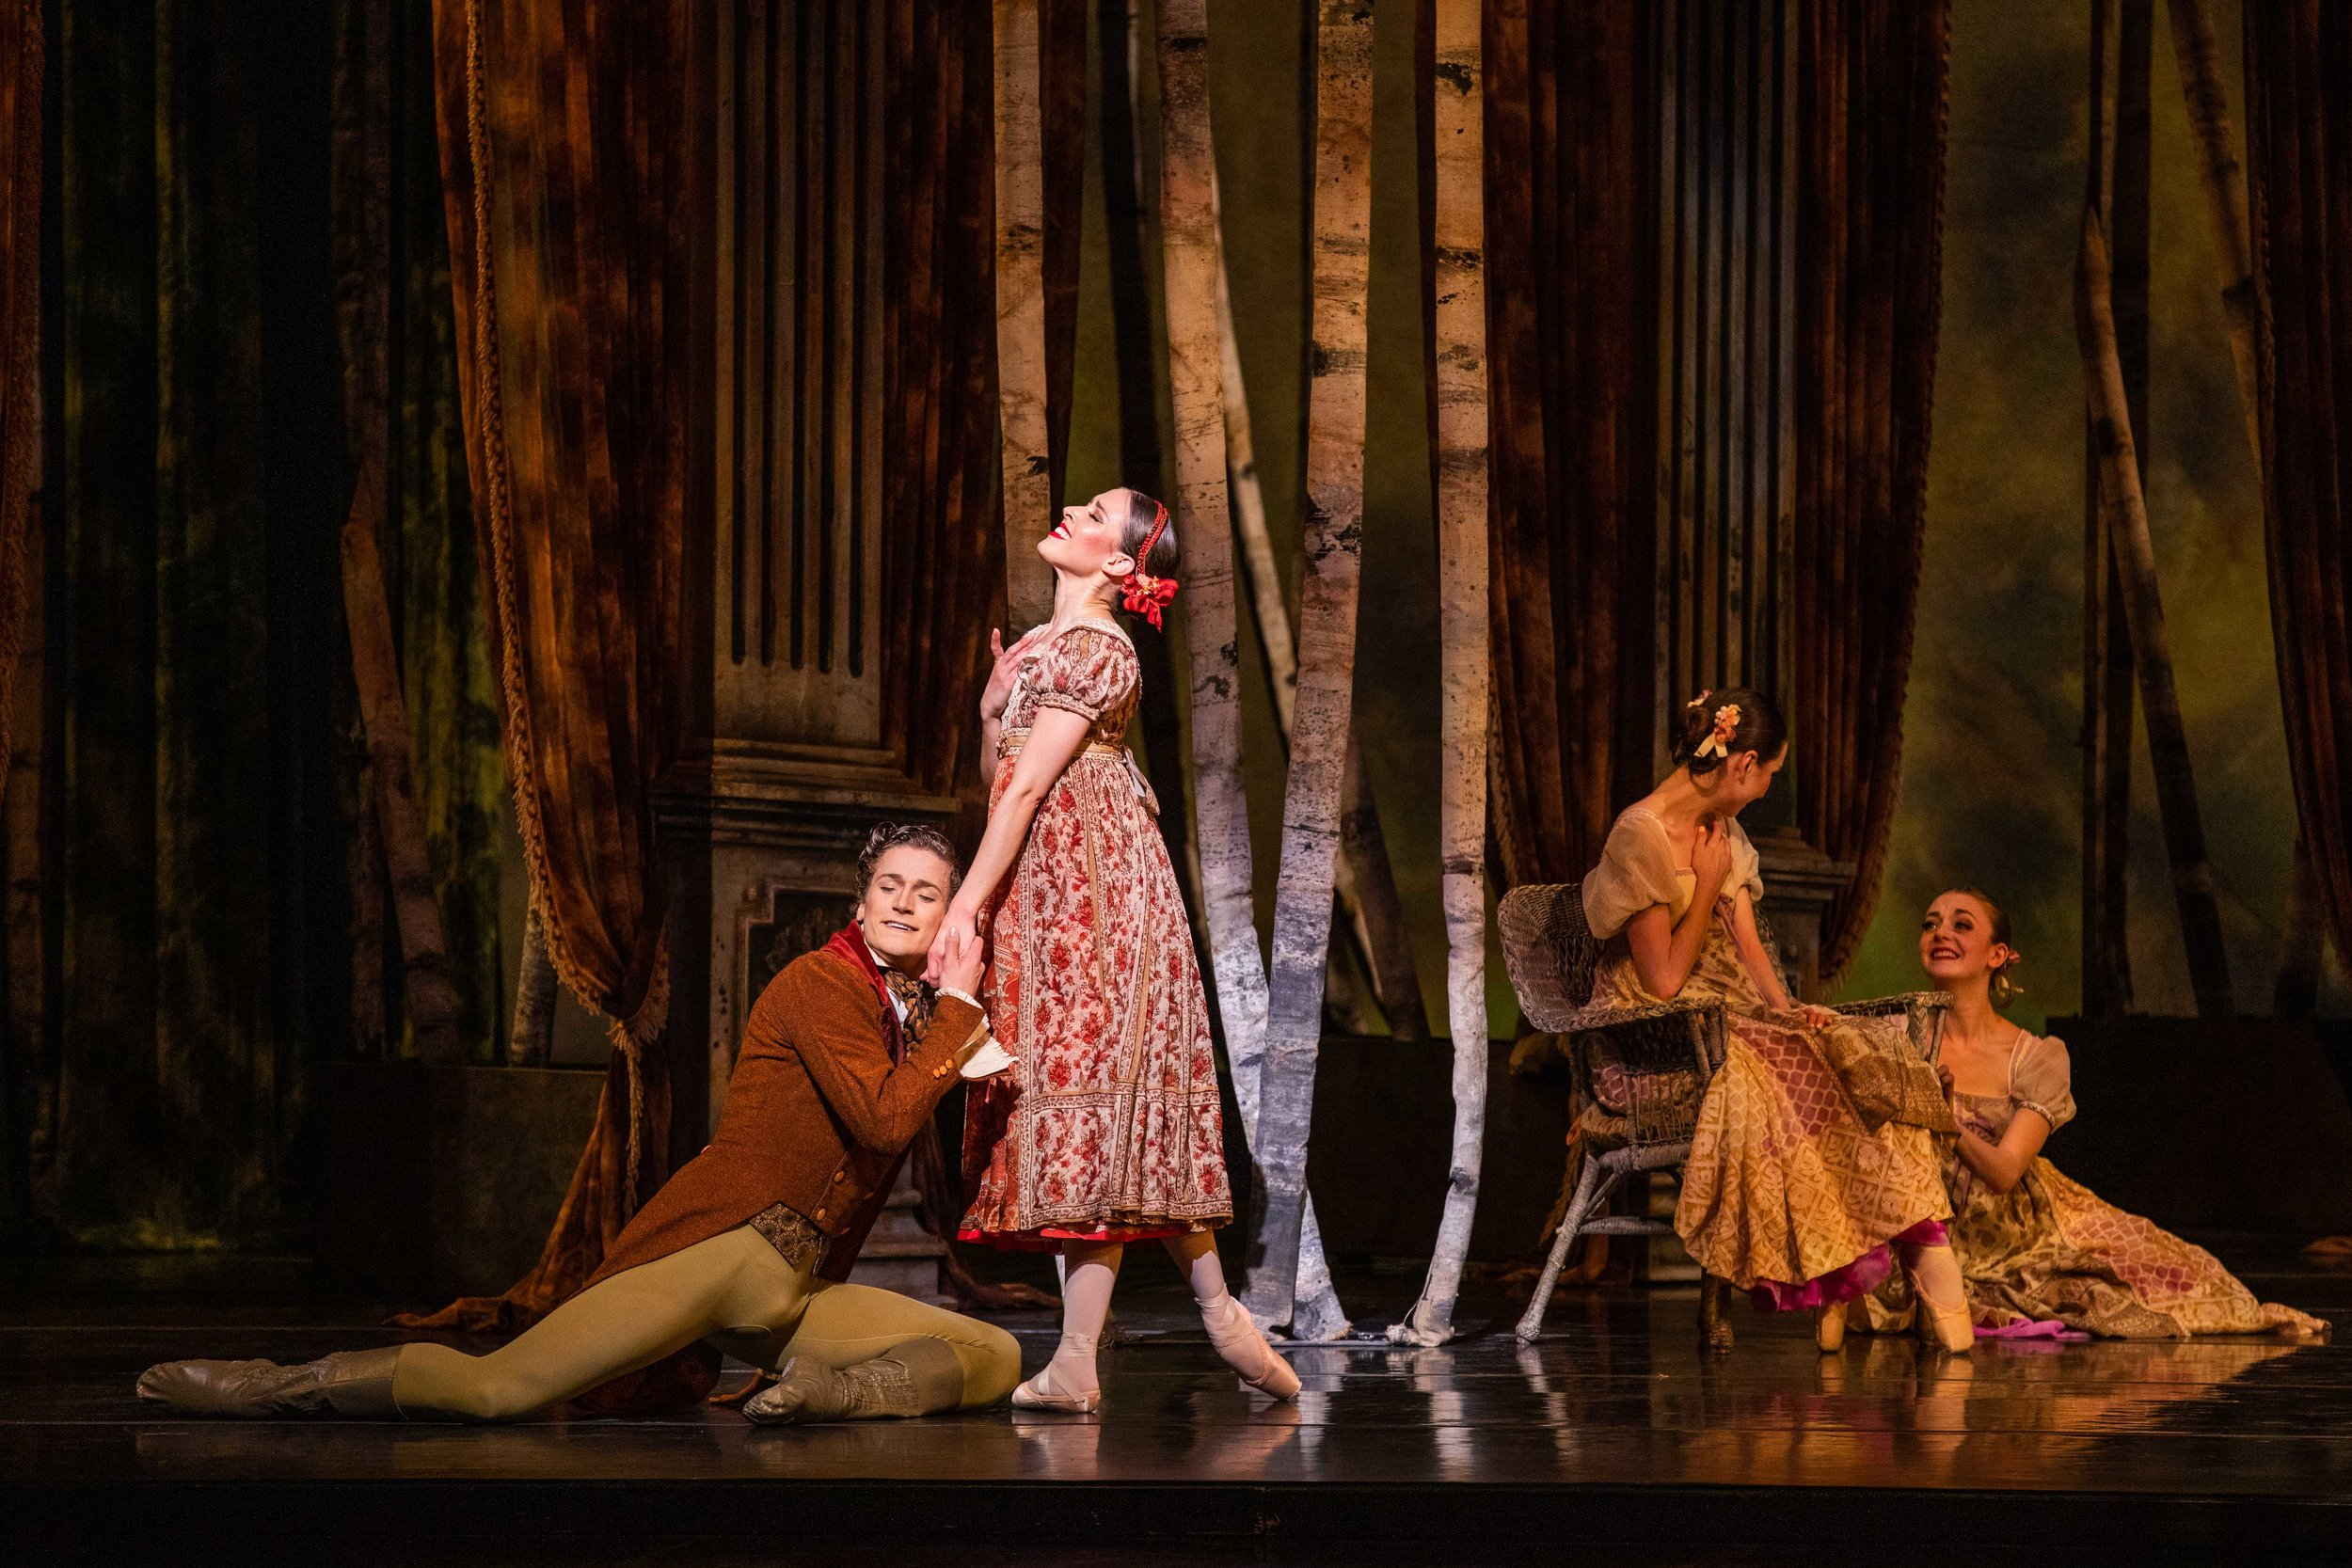 Soloists Jordan Veit (left) and Chelsea Keefer as Lensky and Olga, with artists of Ballet West. Photo by Beau Pearson.